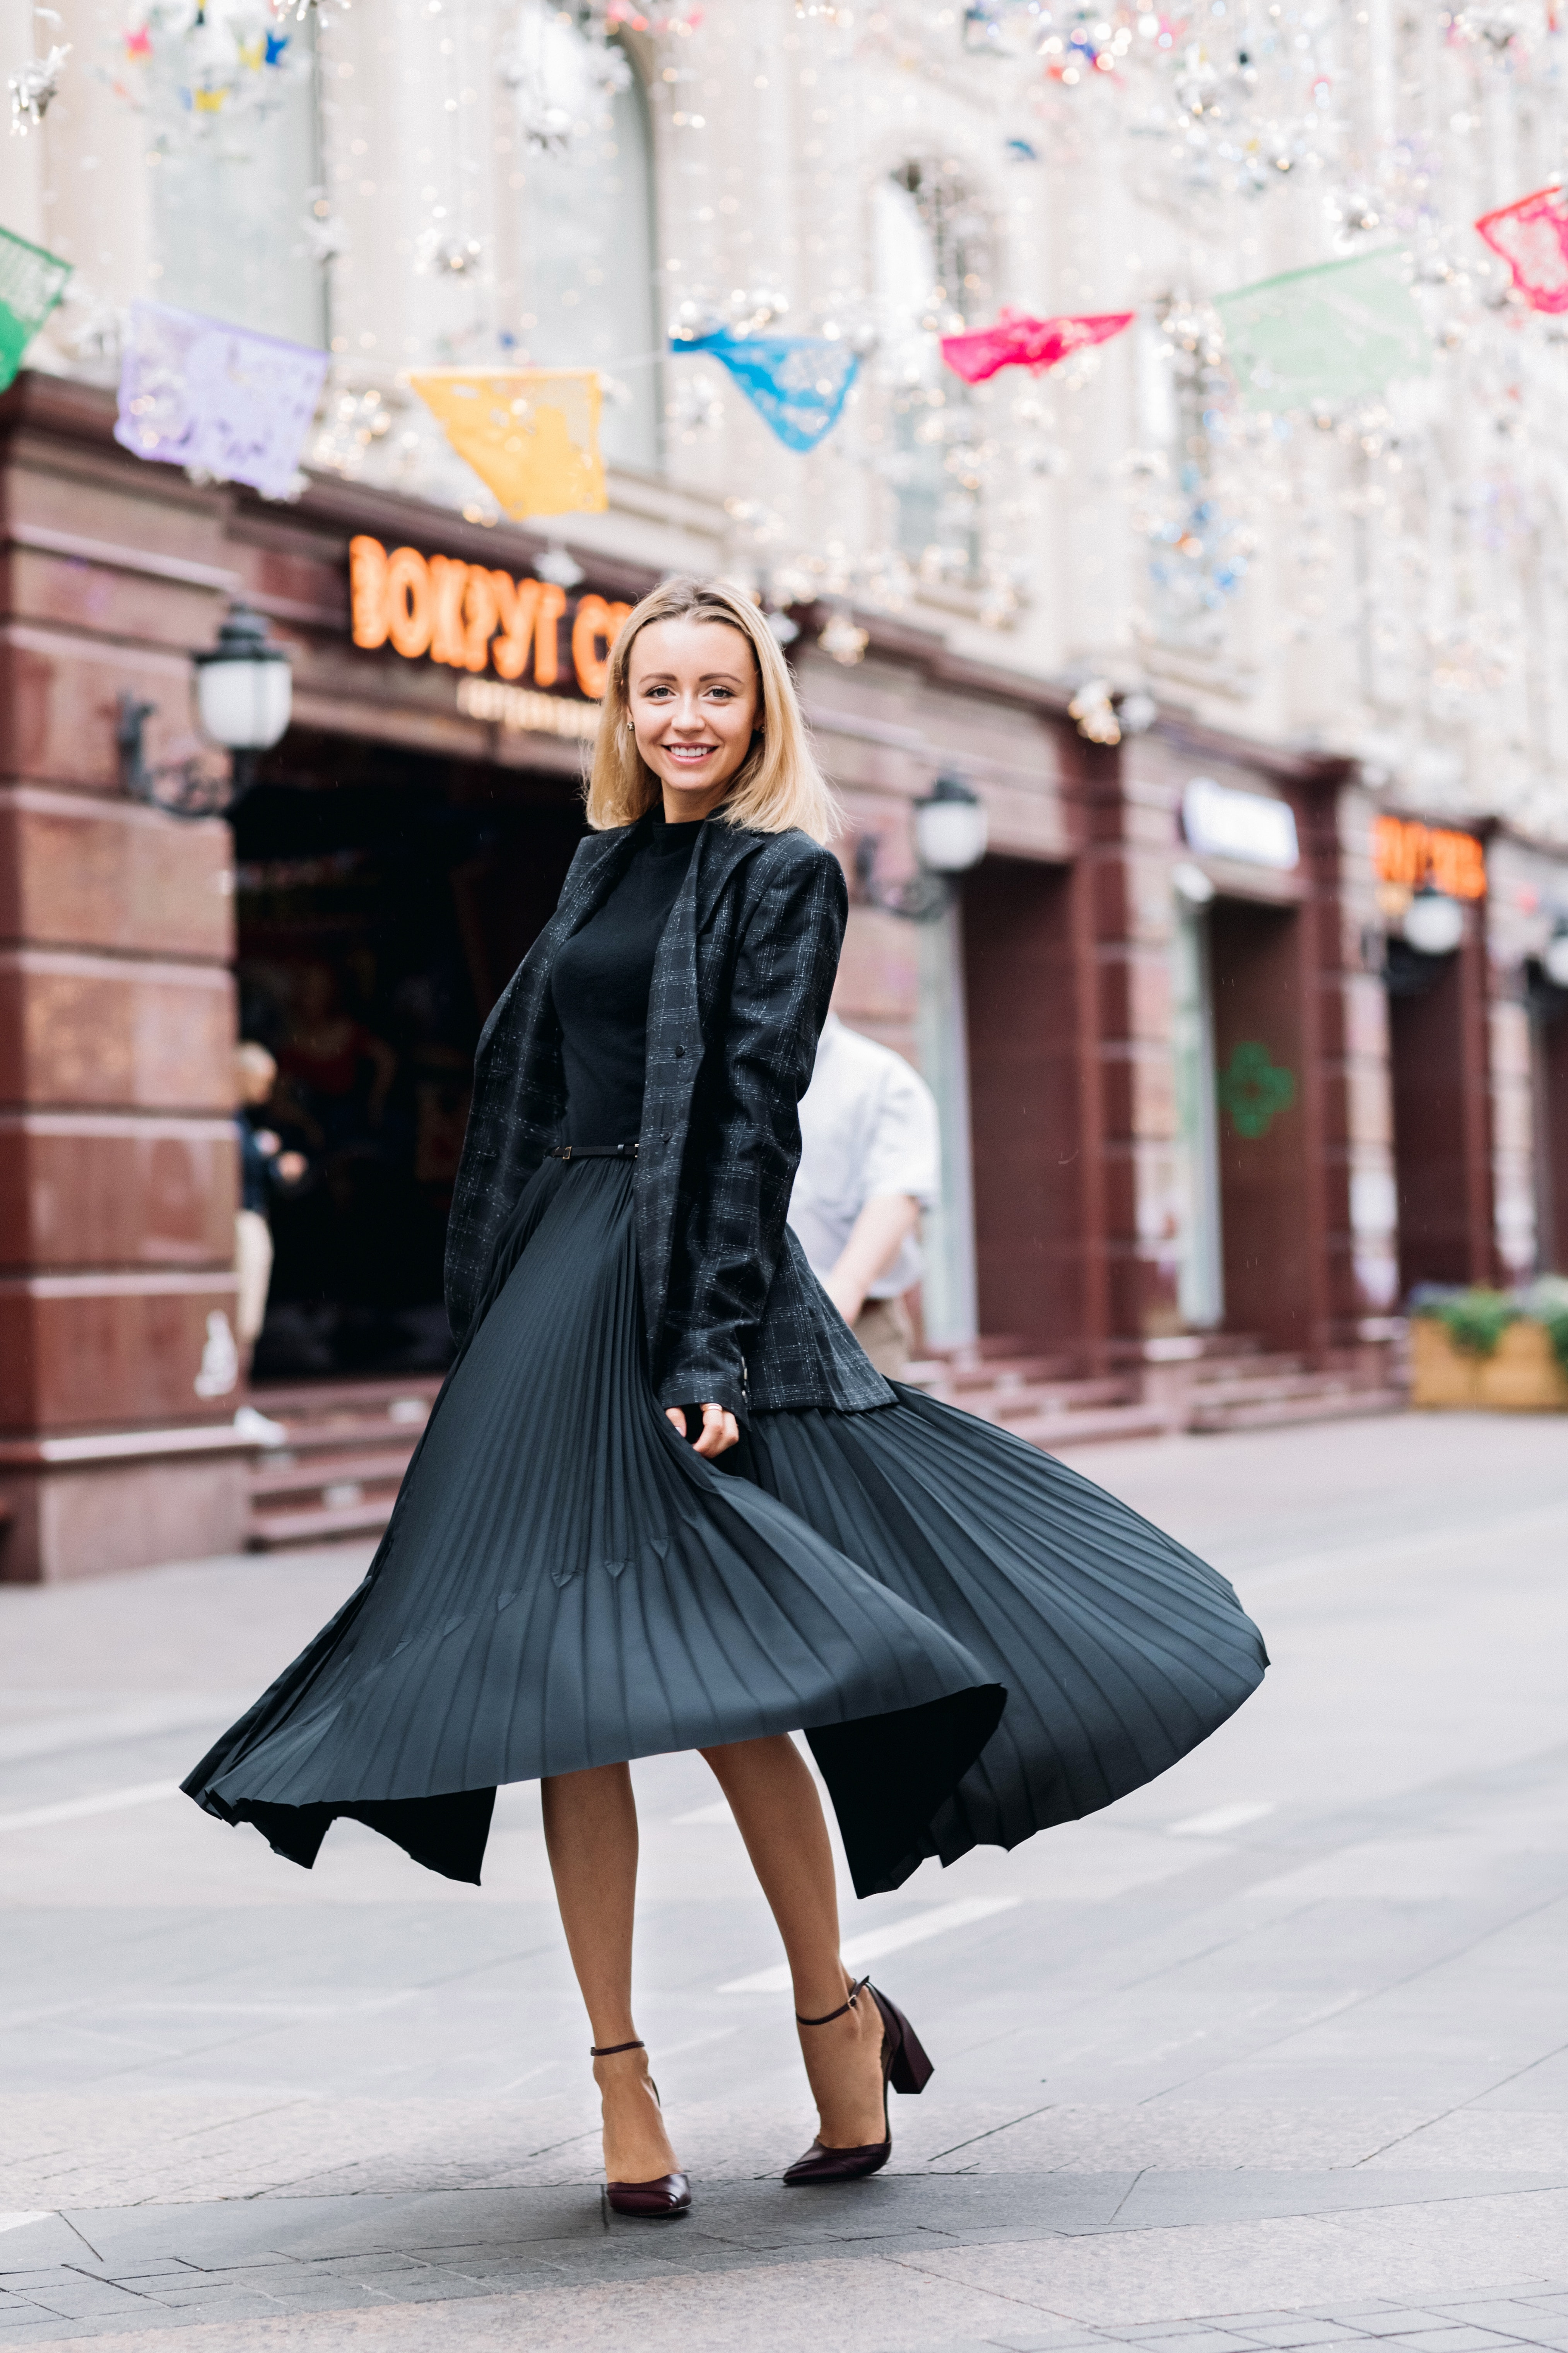 selective focus photo of smiling woman wearing black dress standing on concrete pavement